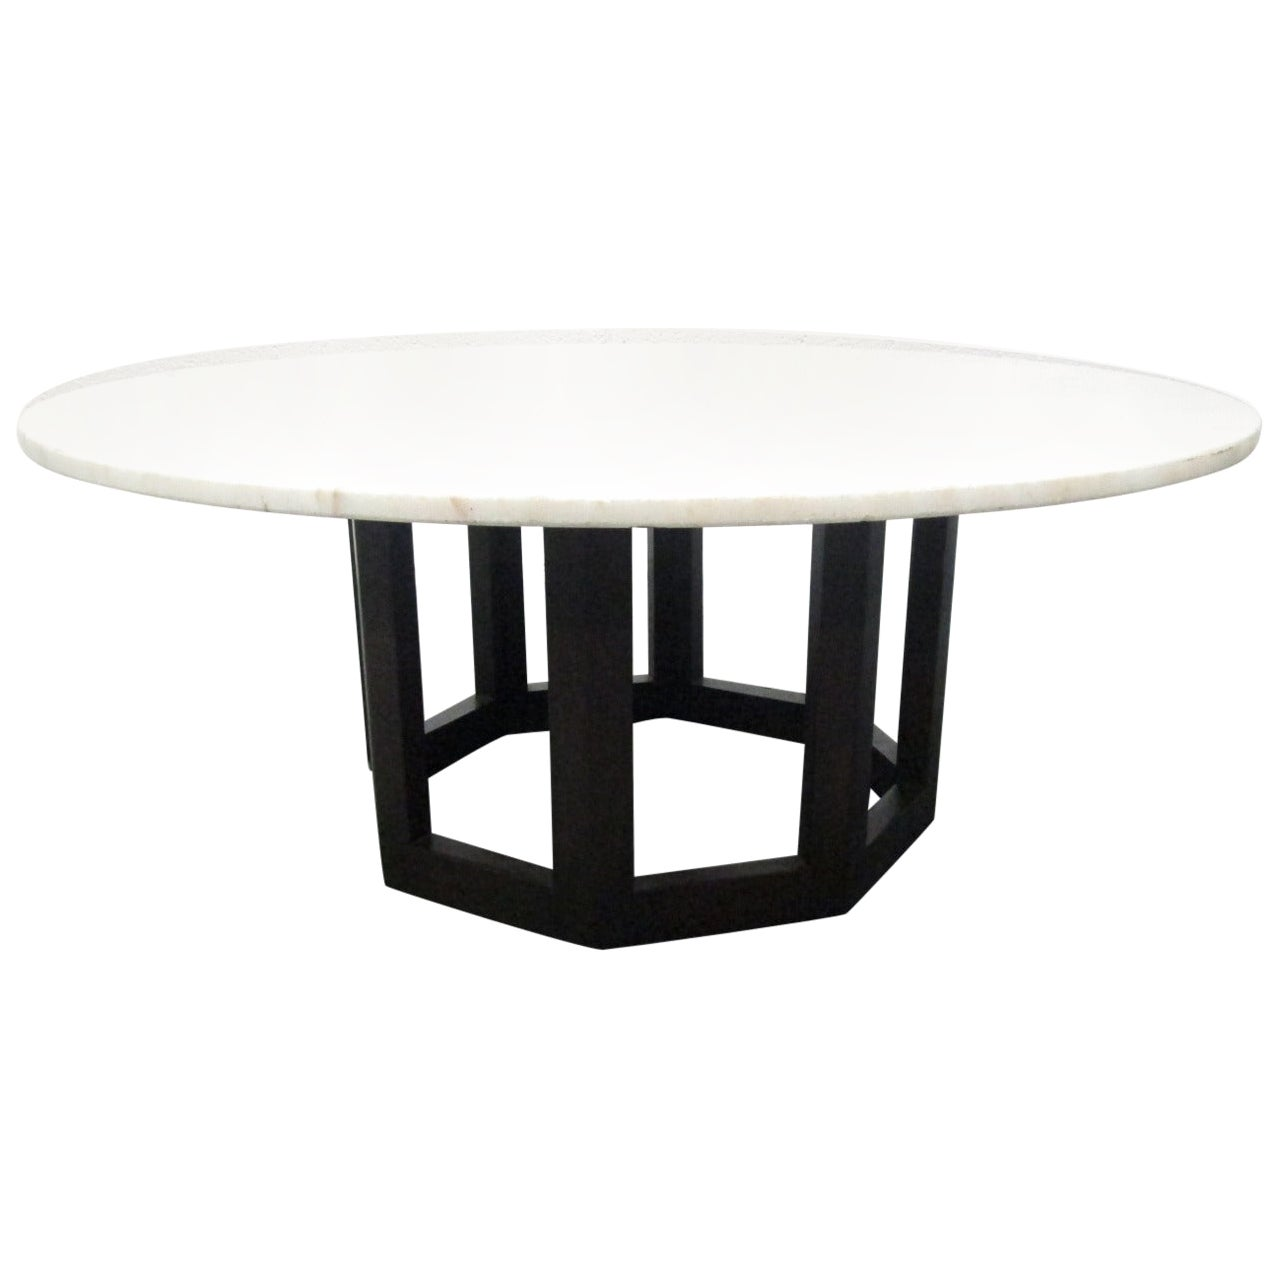 Marble-Top Coffee Table manner of Harvey Probber